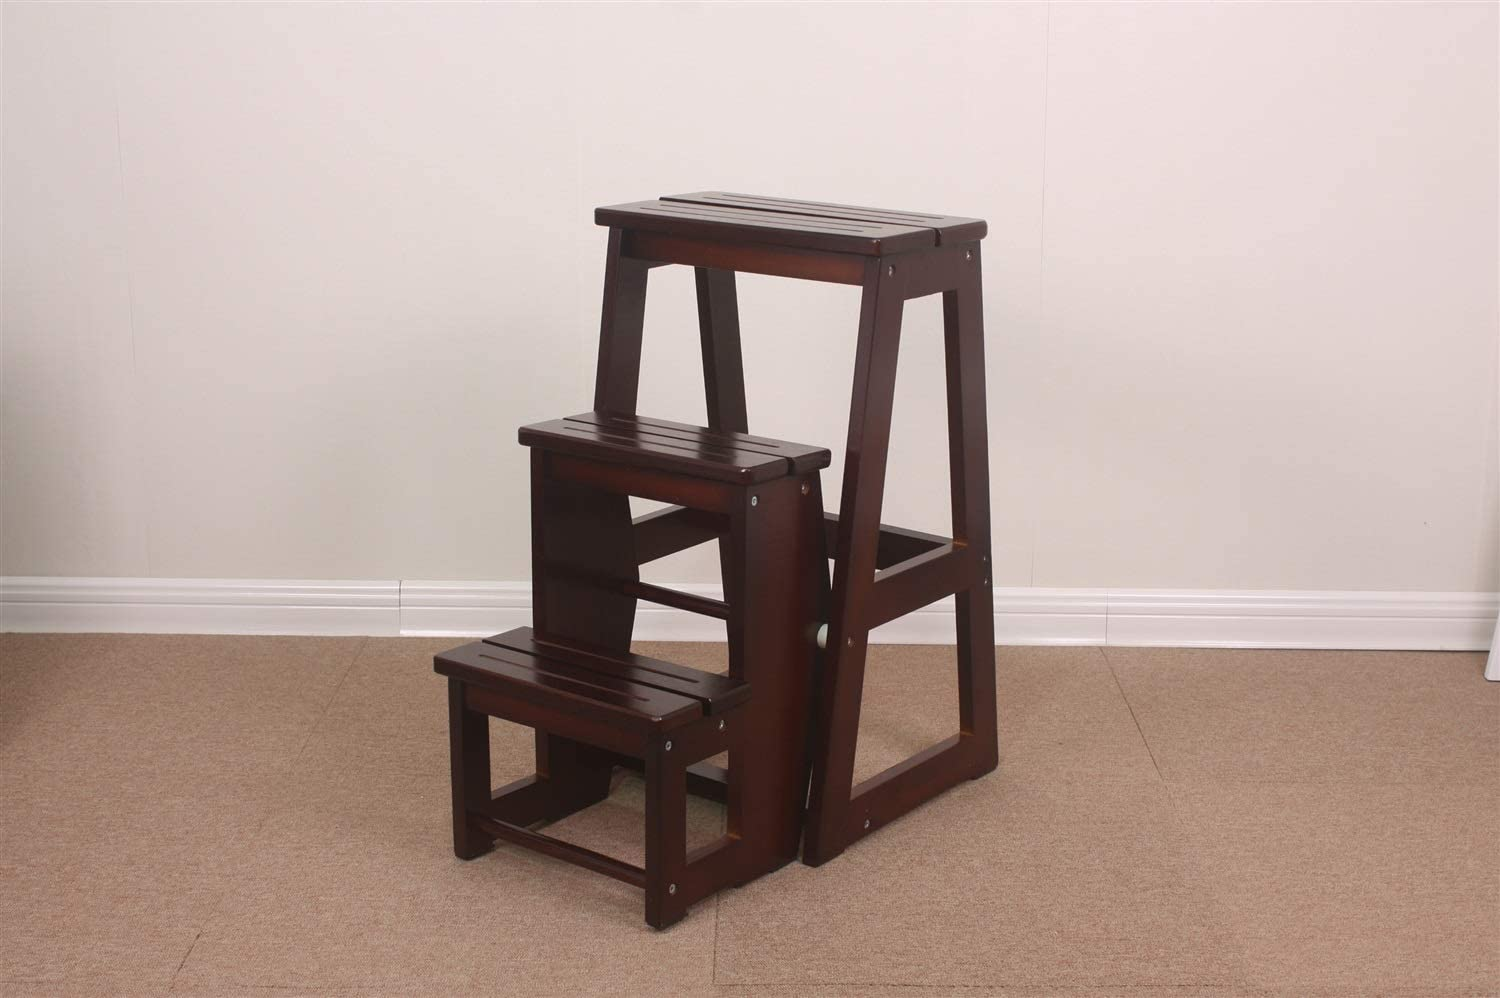 FDFGGR Wooden Folding Minneapolis Mall Stepladder Two Solid Ladder Spasm price Stool